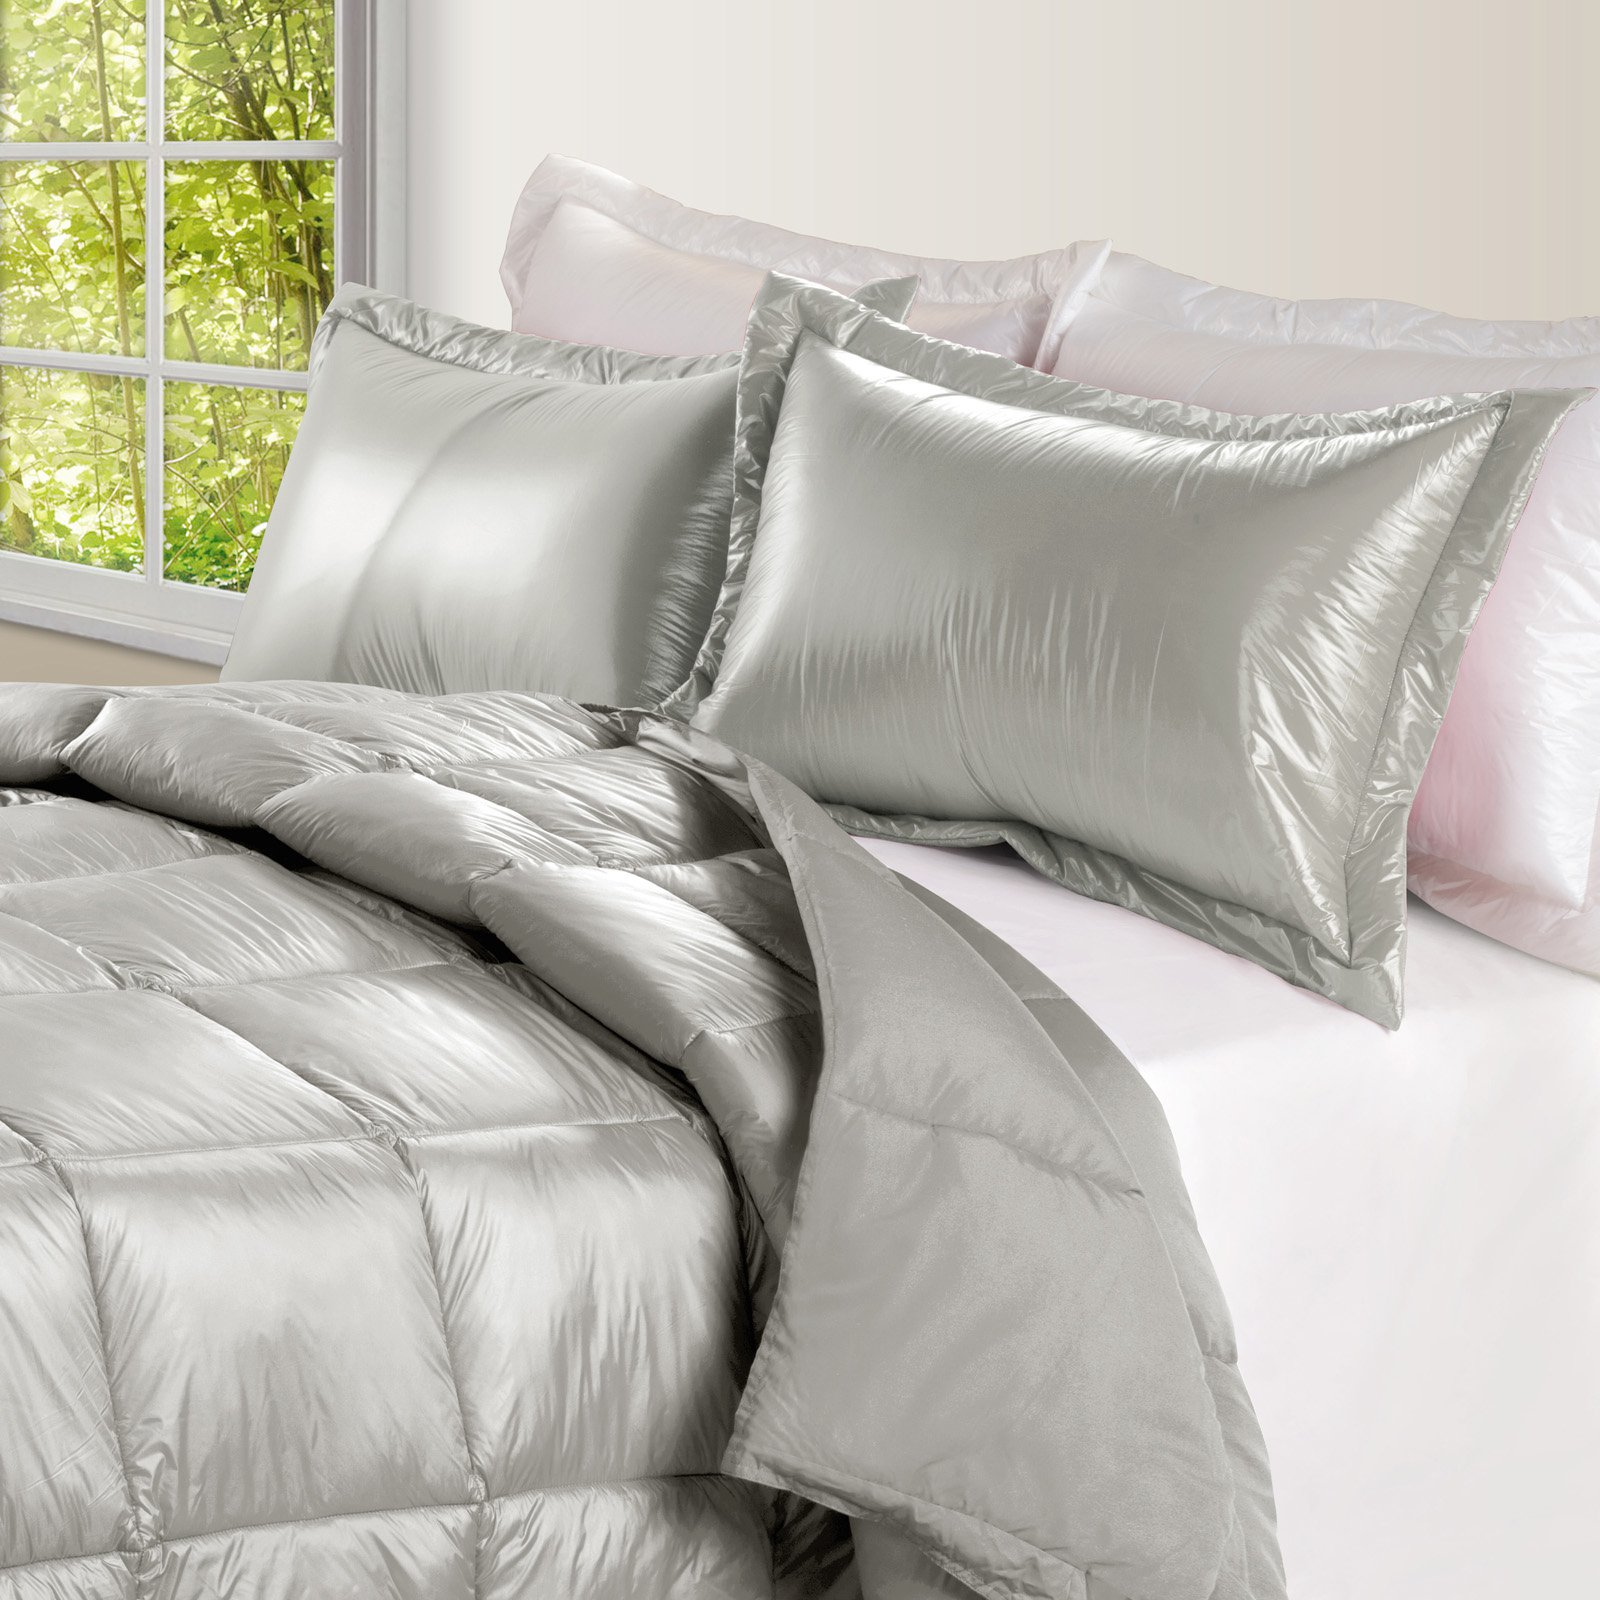 PUFF High Loft Down Indoor/Outdoor Water Resistant Comforter with Extra Strong Nylon Cover